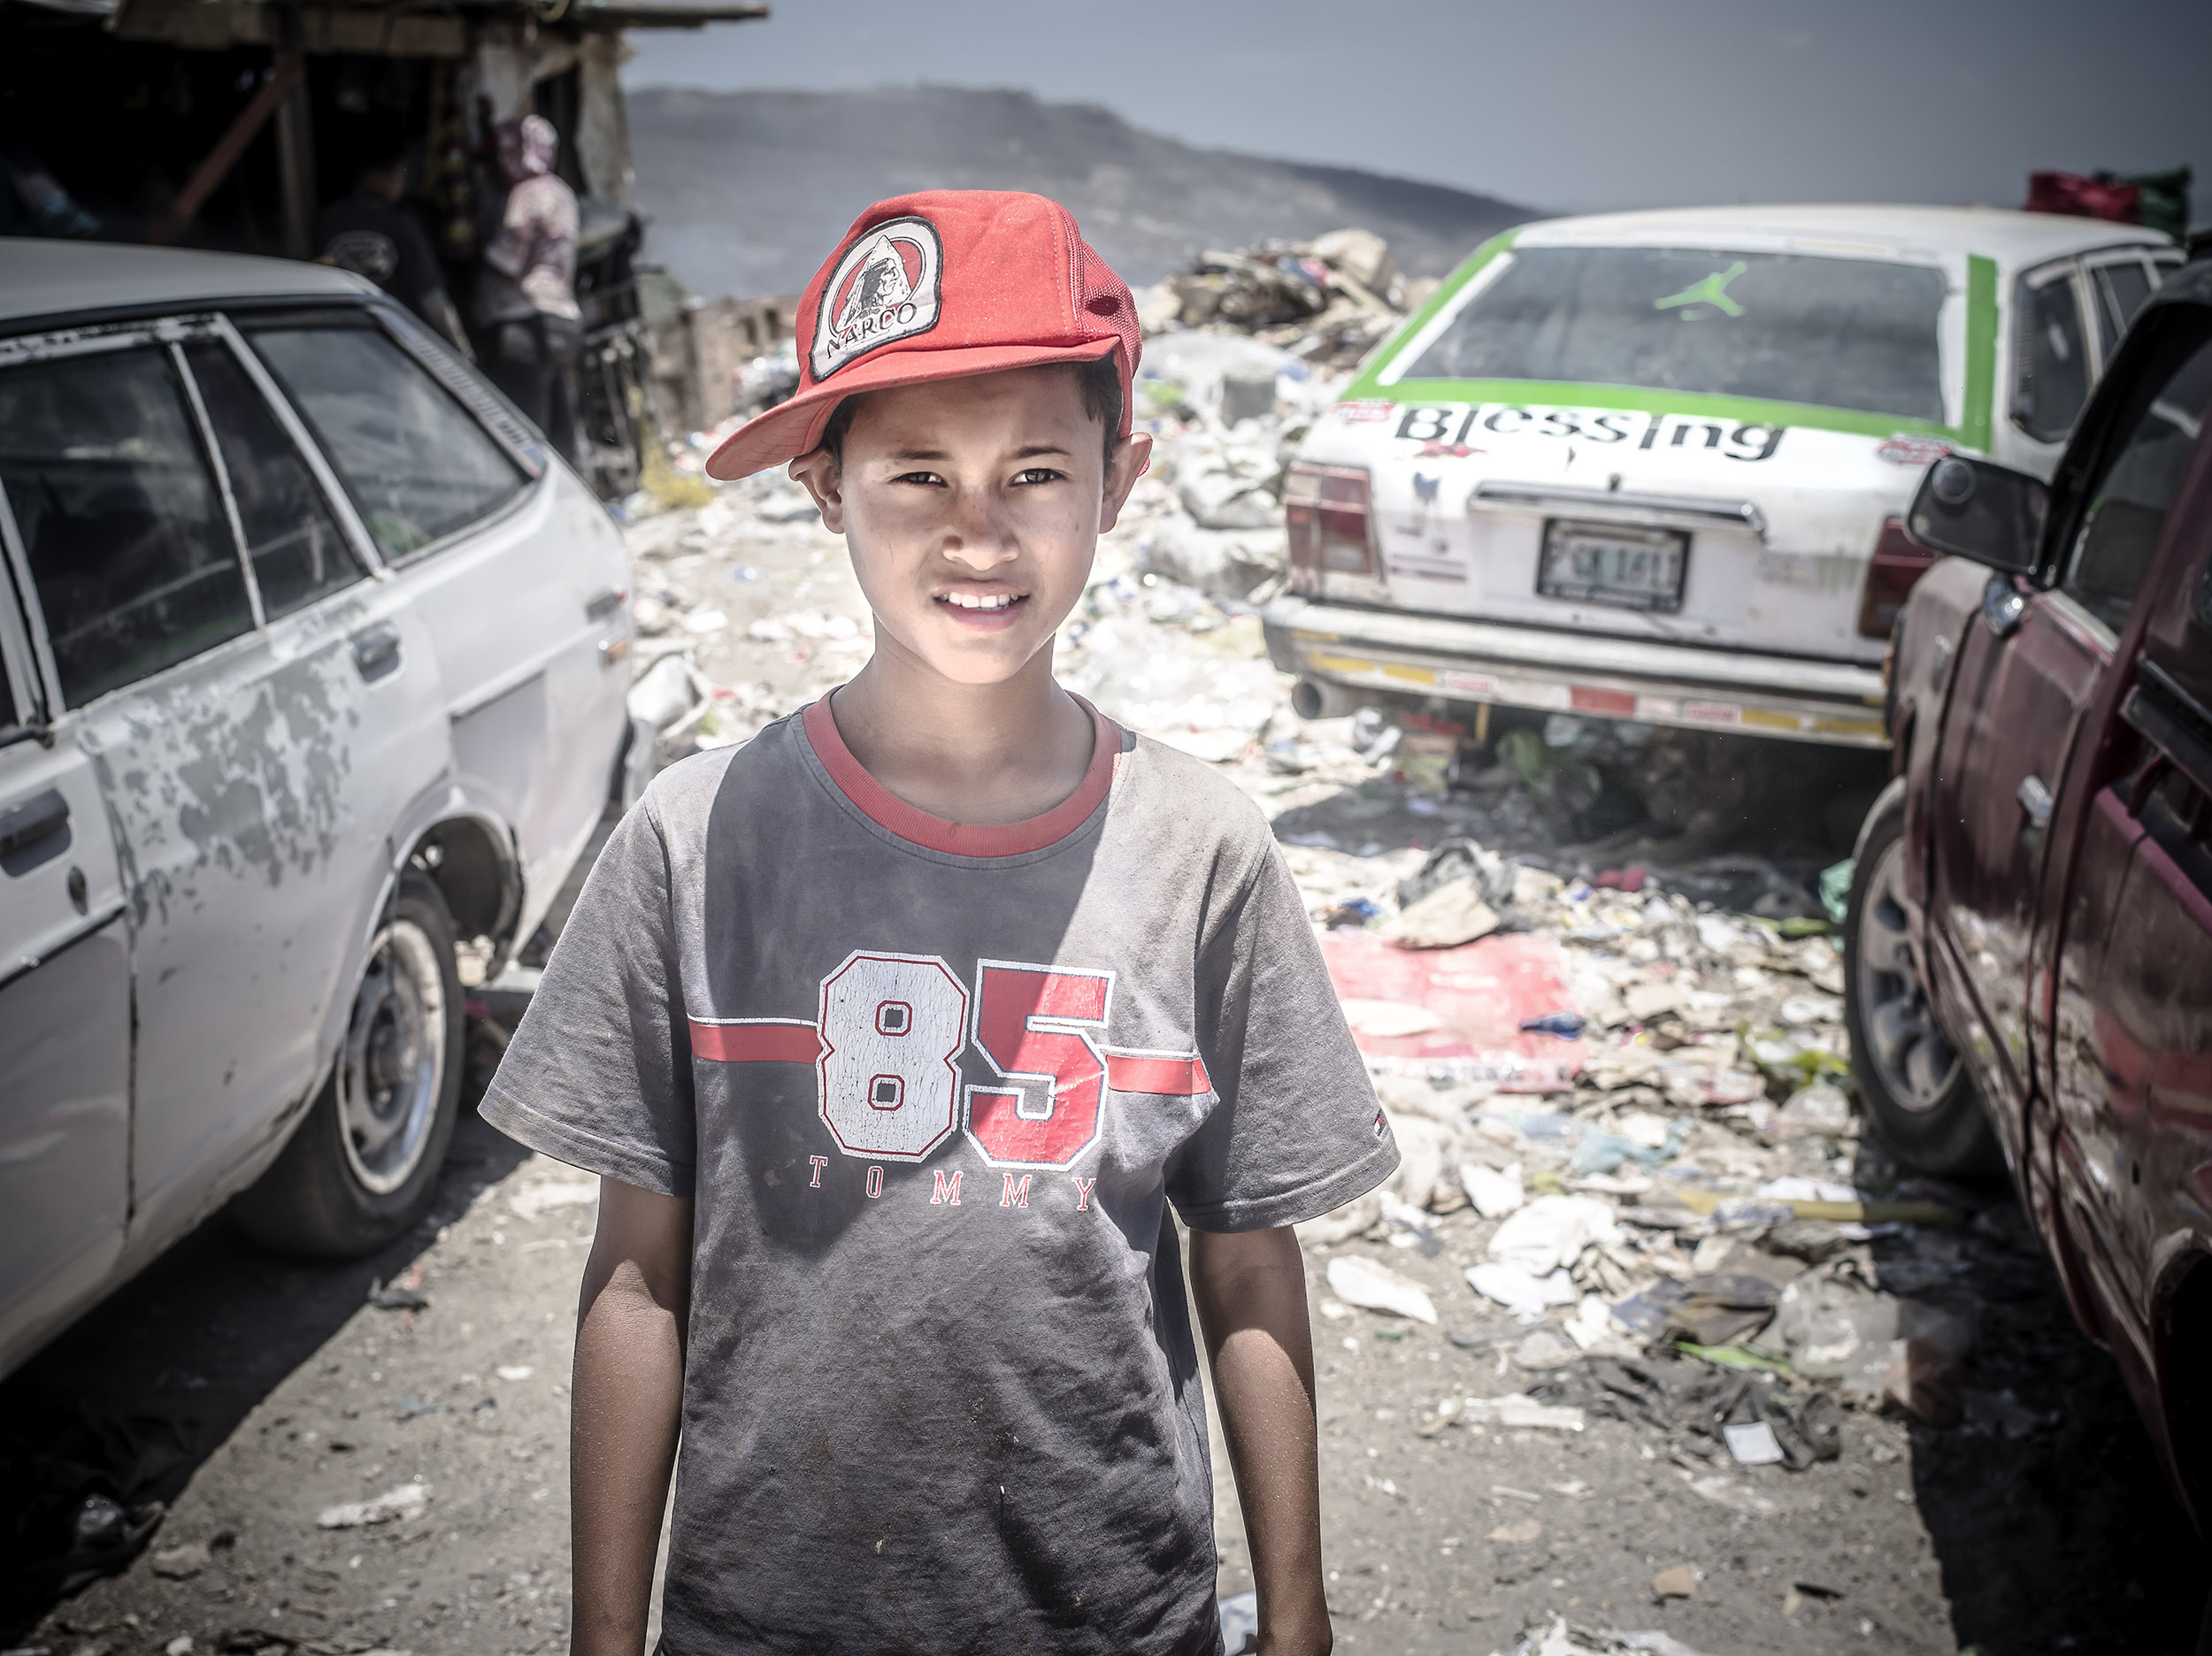 A young boy followed me around in curiosity. I directed him to Pastor Jeony to inquire about AFE (Amor, Fé and Esperanza) a complete program that helps this community.